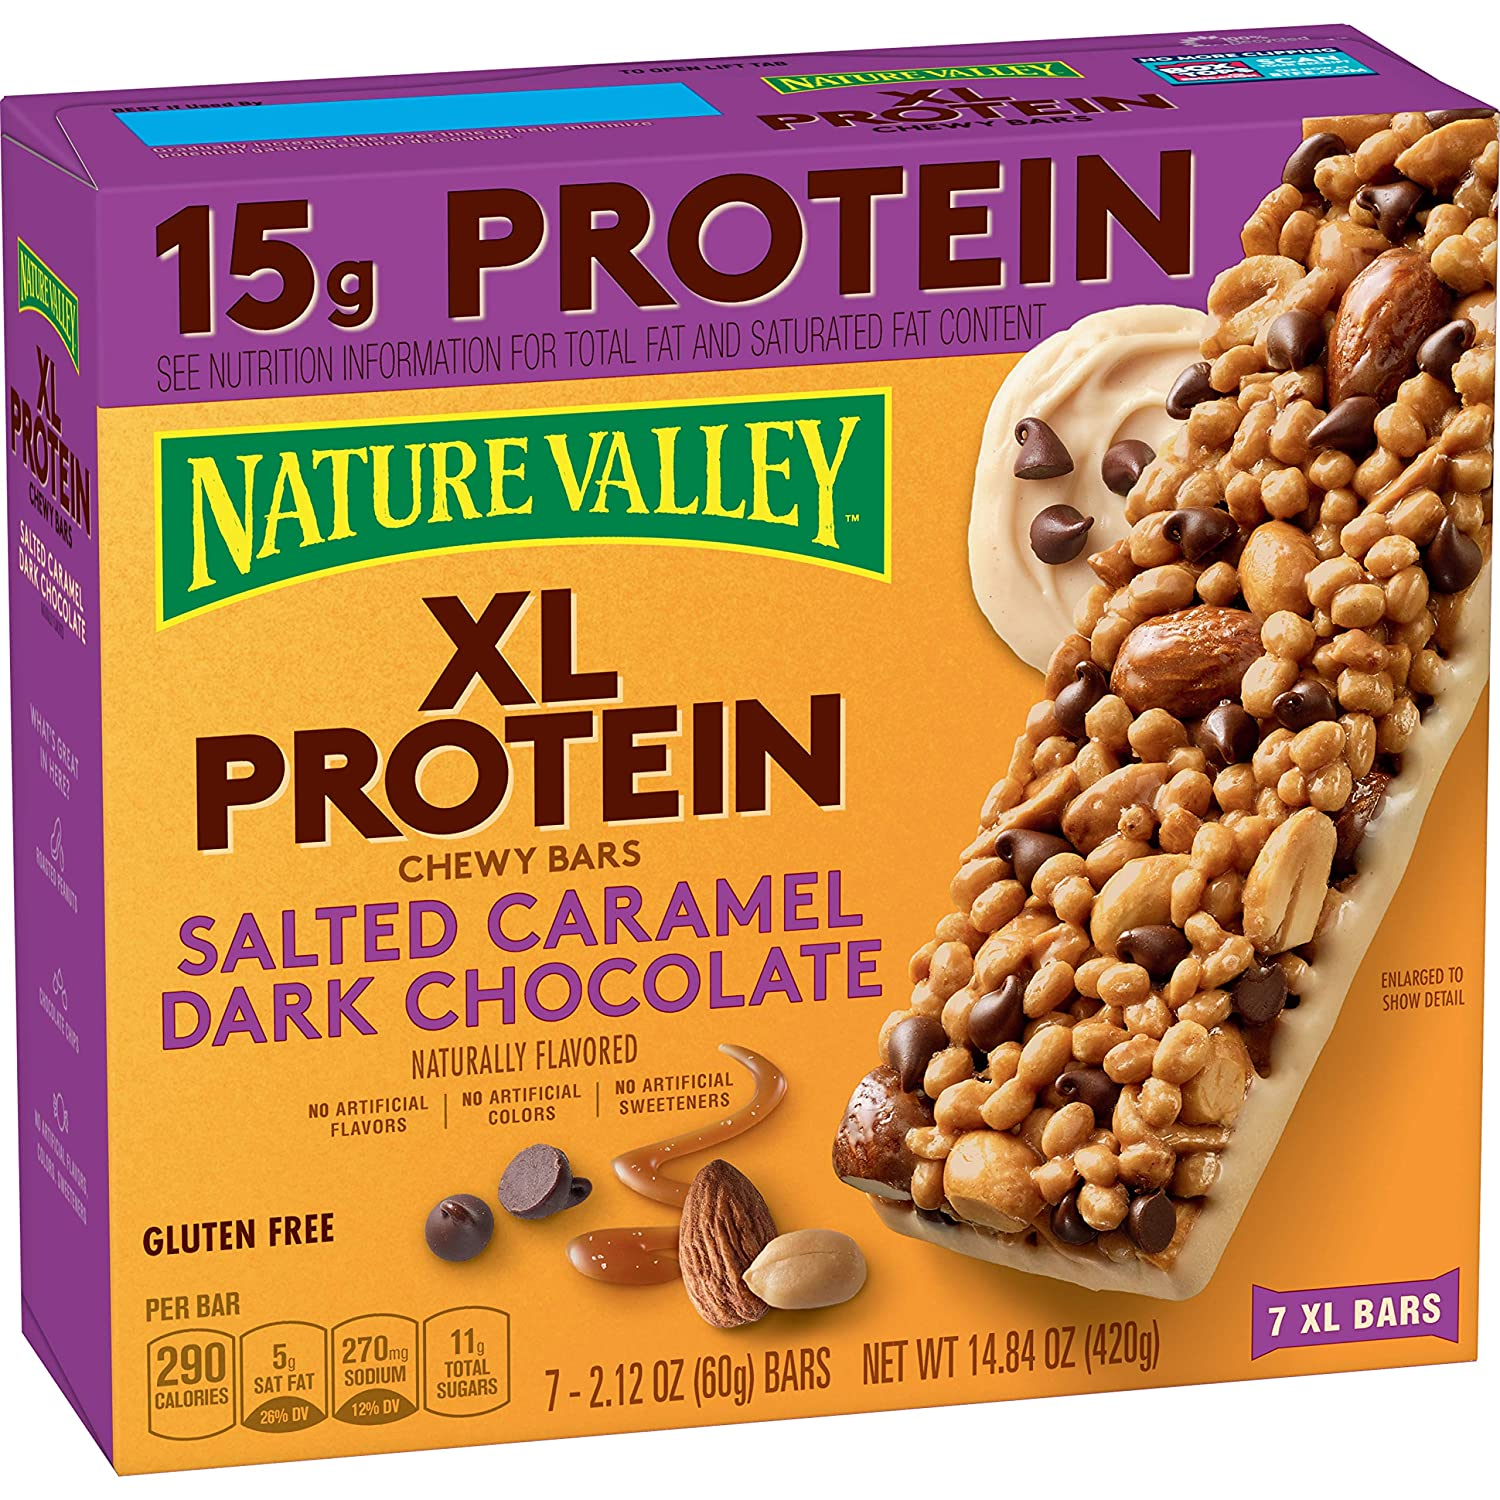 Protein One Nature Valley XL Protein Chewy Bar, Salted Caramel Dark Chocolate, 2.12oz 7 count, 14.84 oz